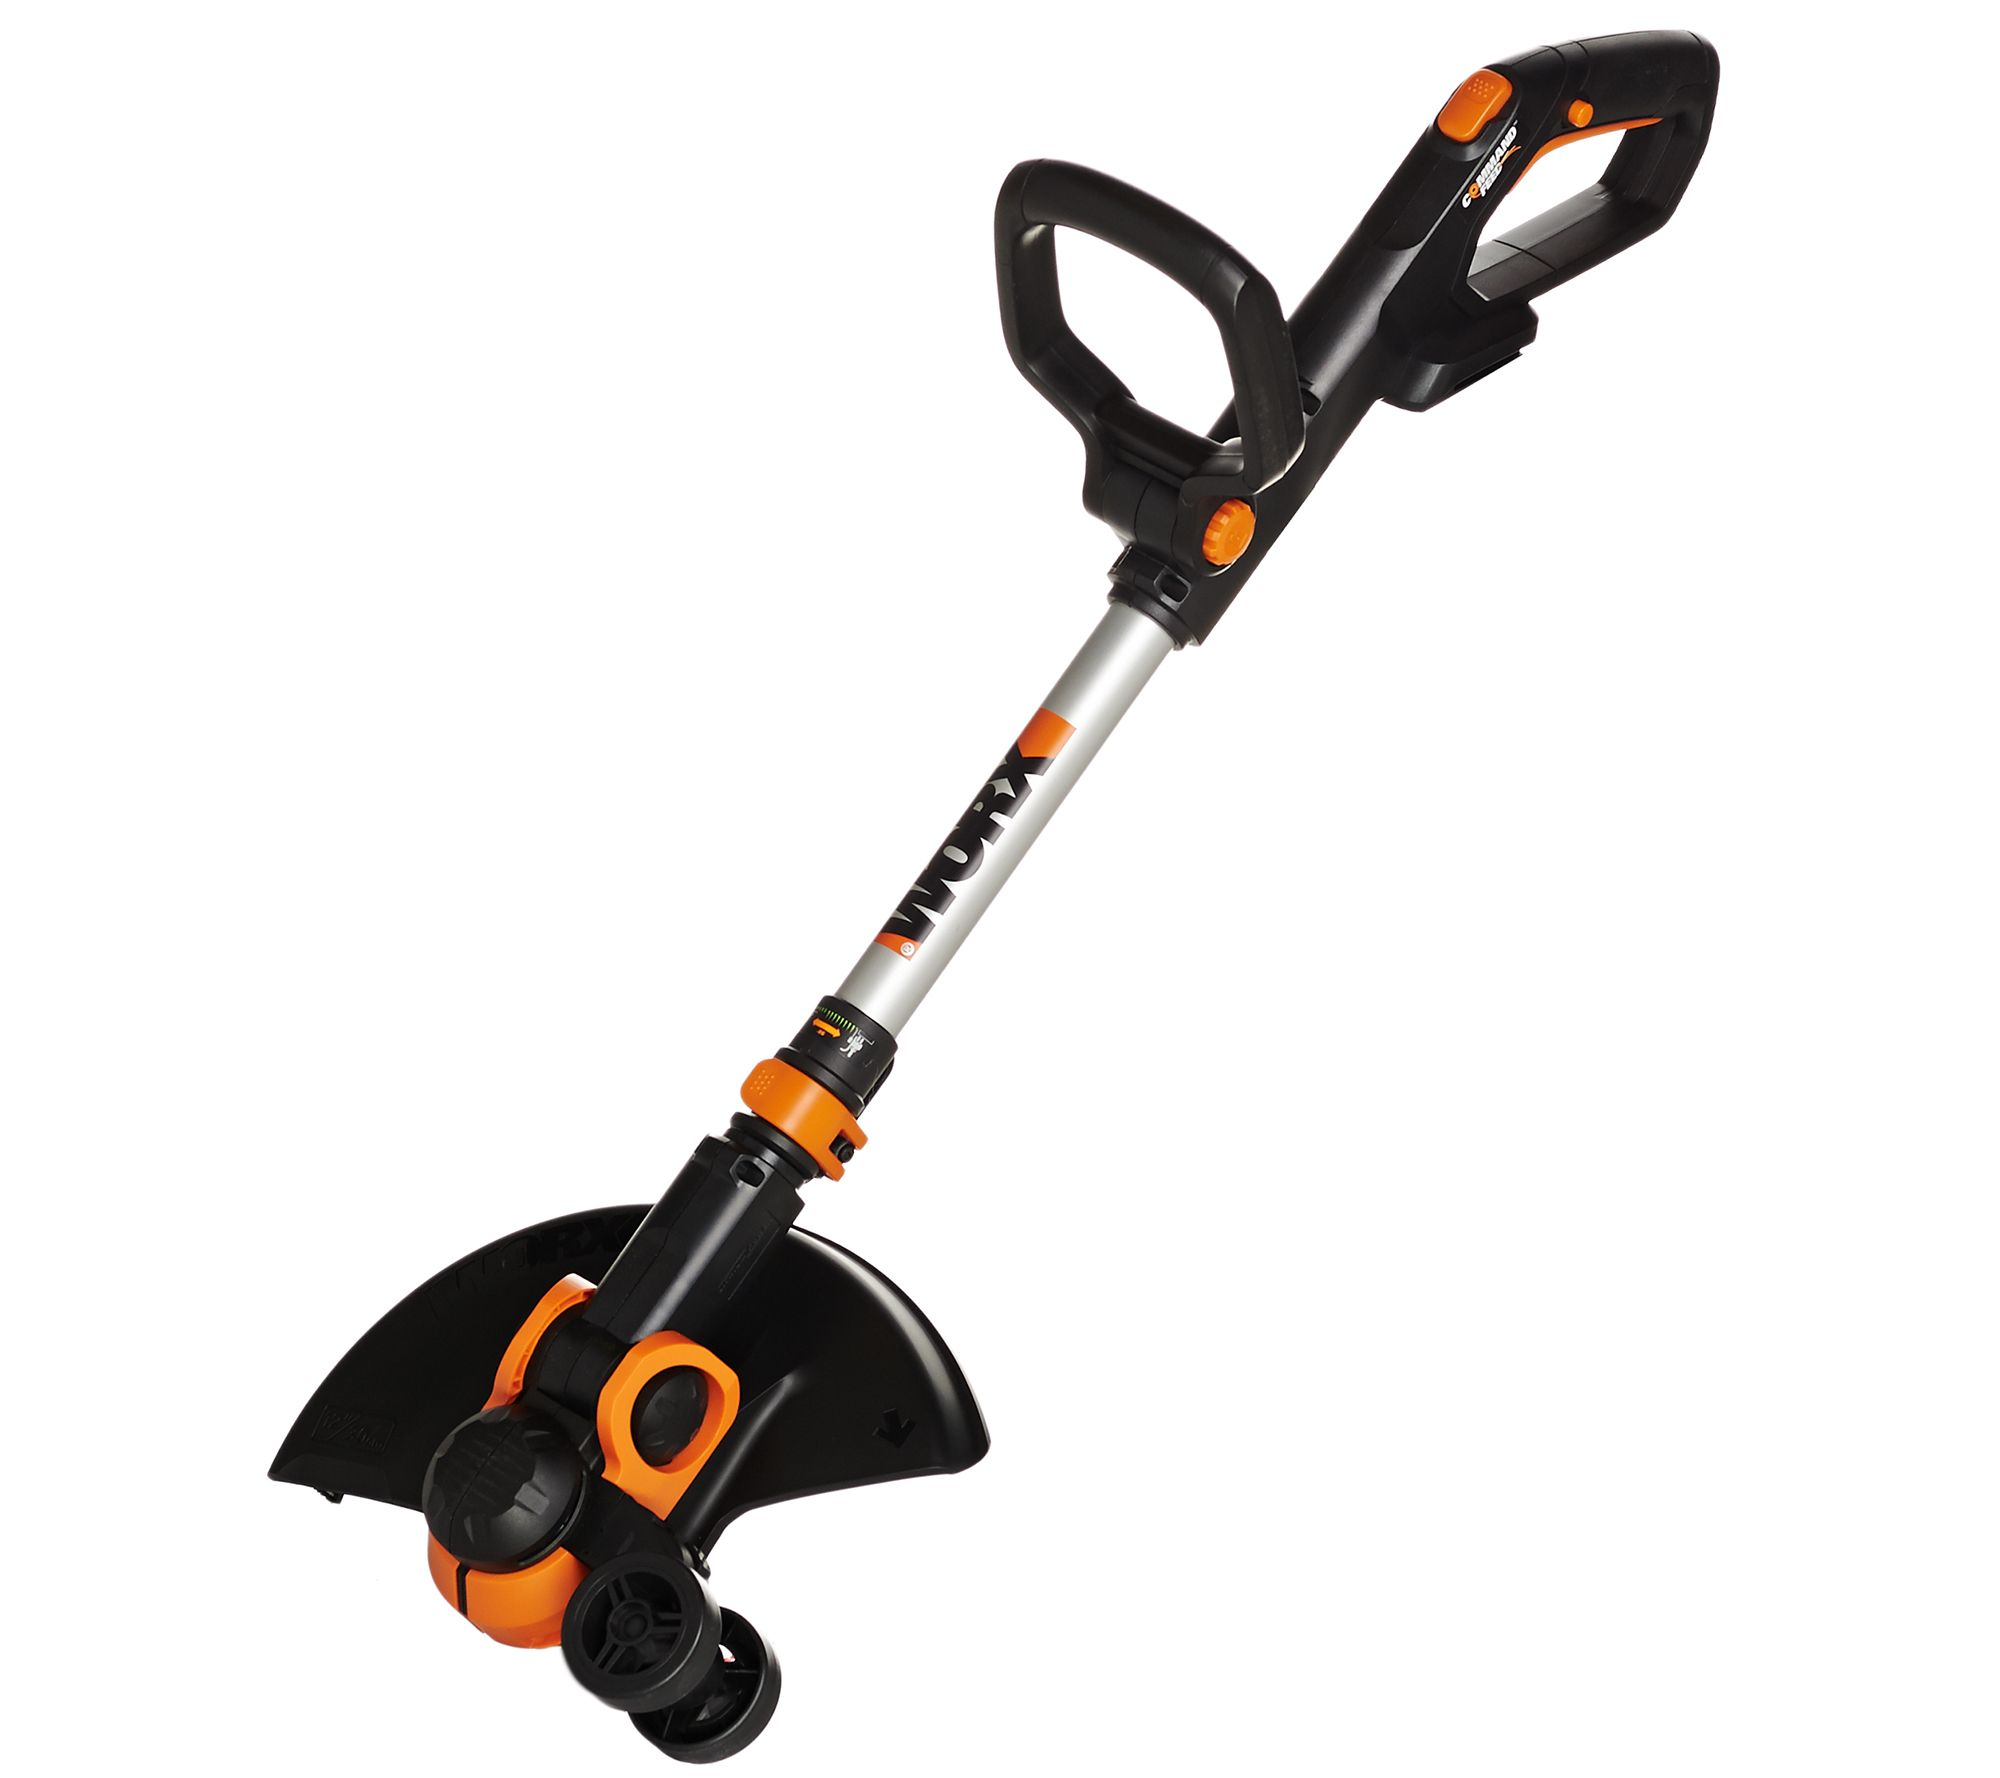 Worx 3 0 Trimmer & Edger w 2 Batteries mand Feed & 6 Spools